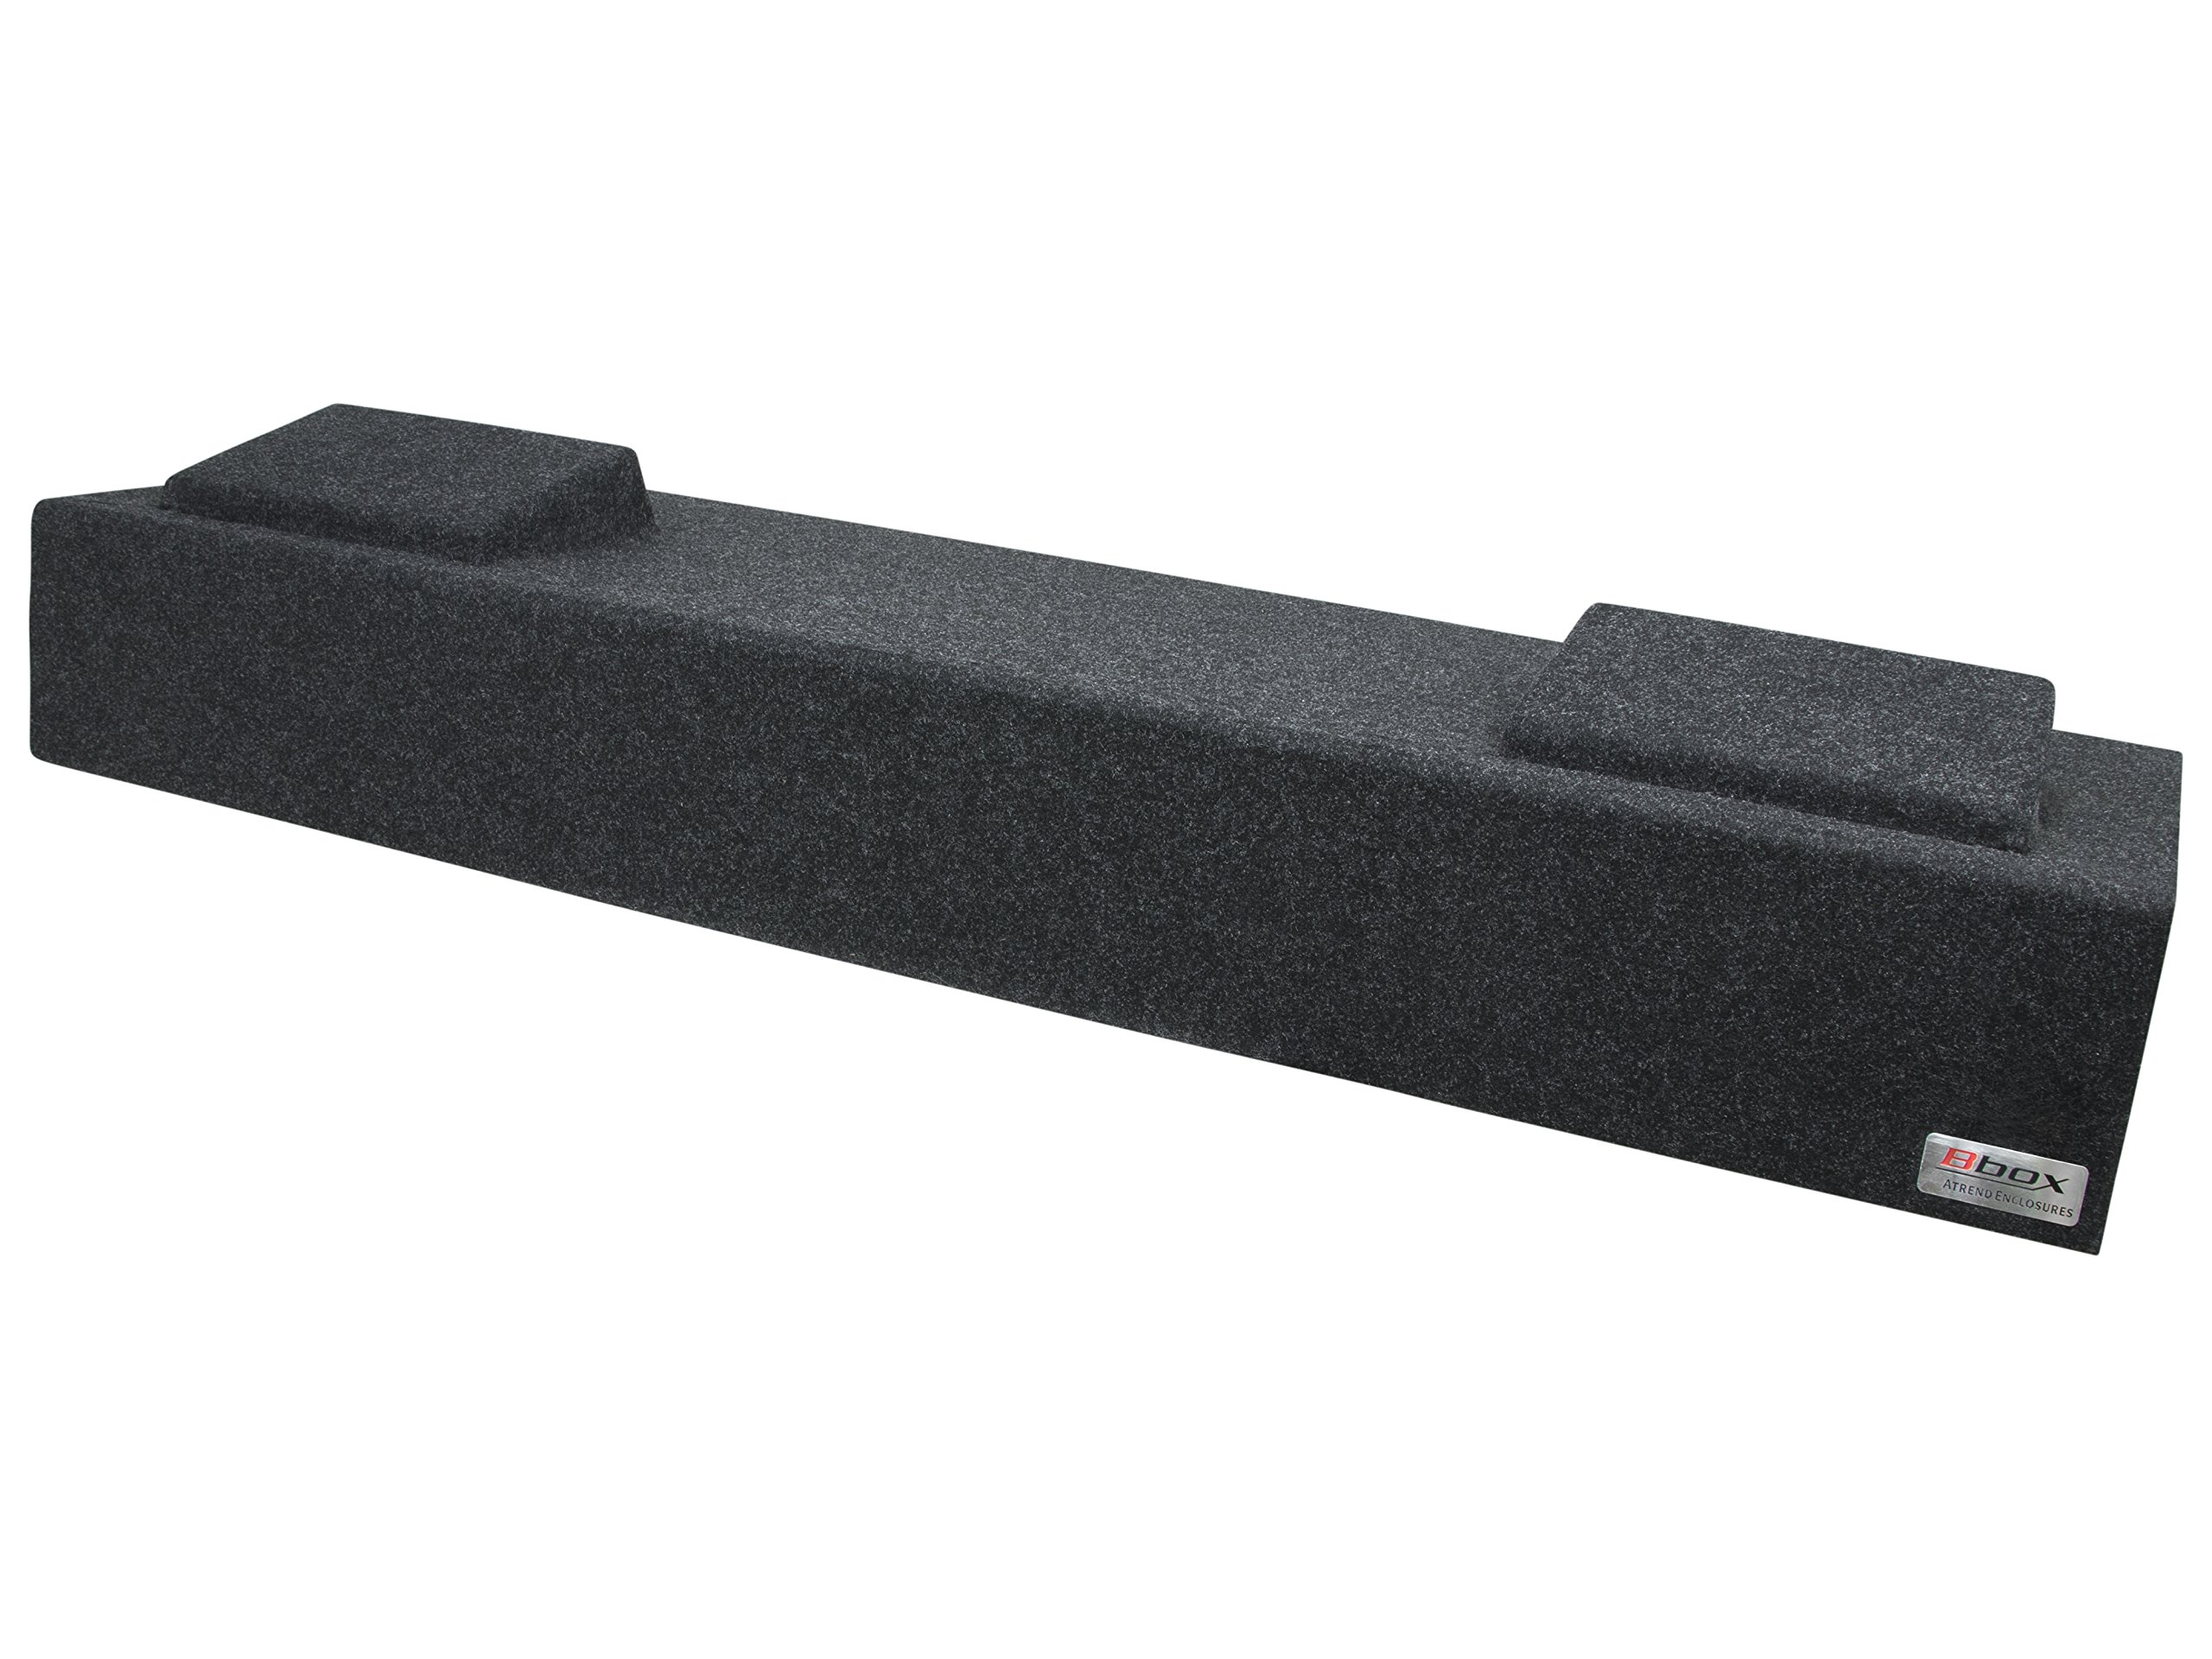 Bbox A182-12Cp Dual 12'' Sealed Carpeted Subwoofer Enclosure - Fits 2007 - 2013 Chevrolet / GMC Silverado / Sierra Crew Cab